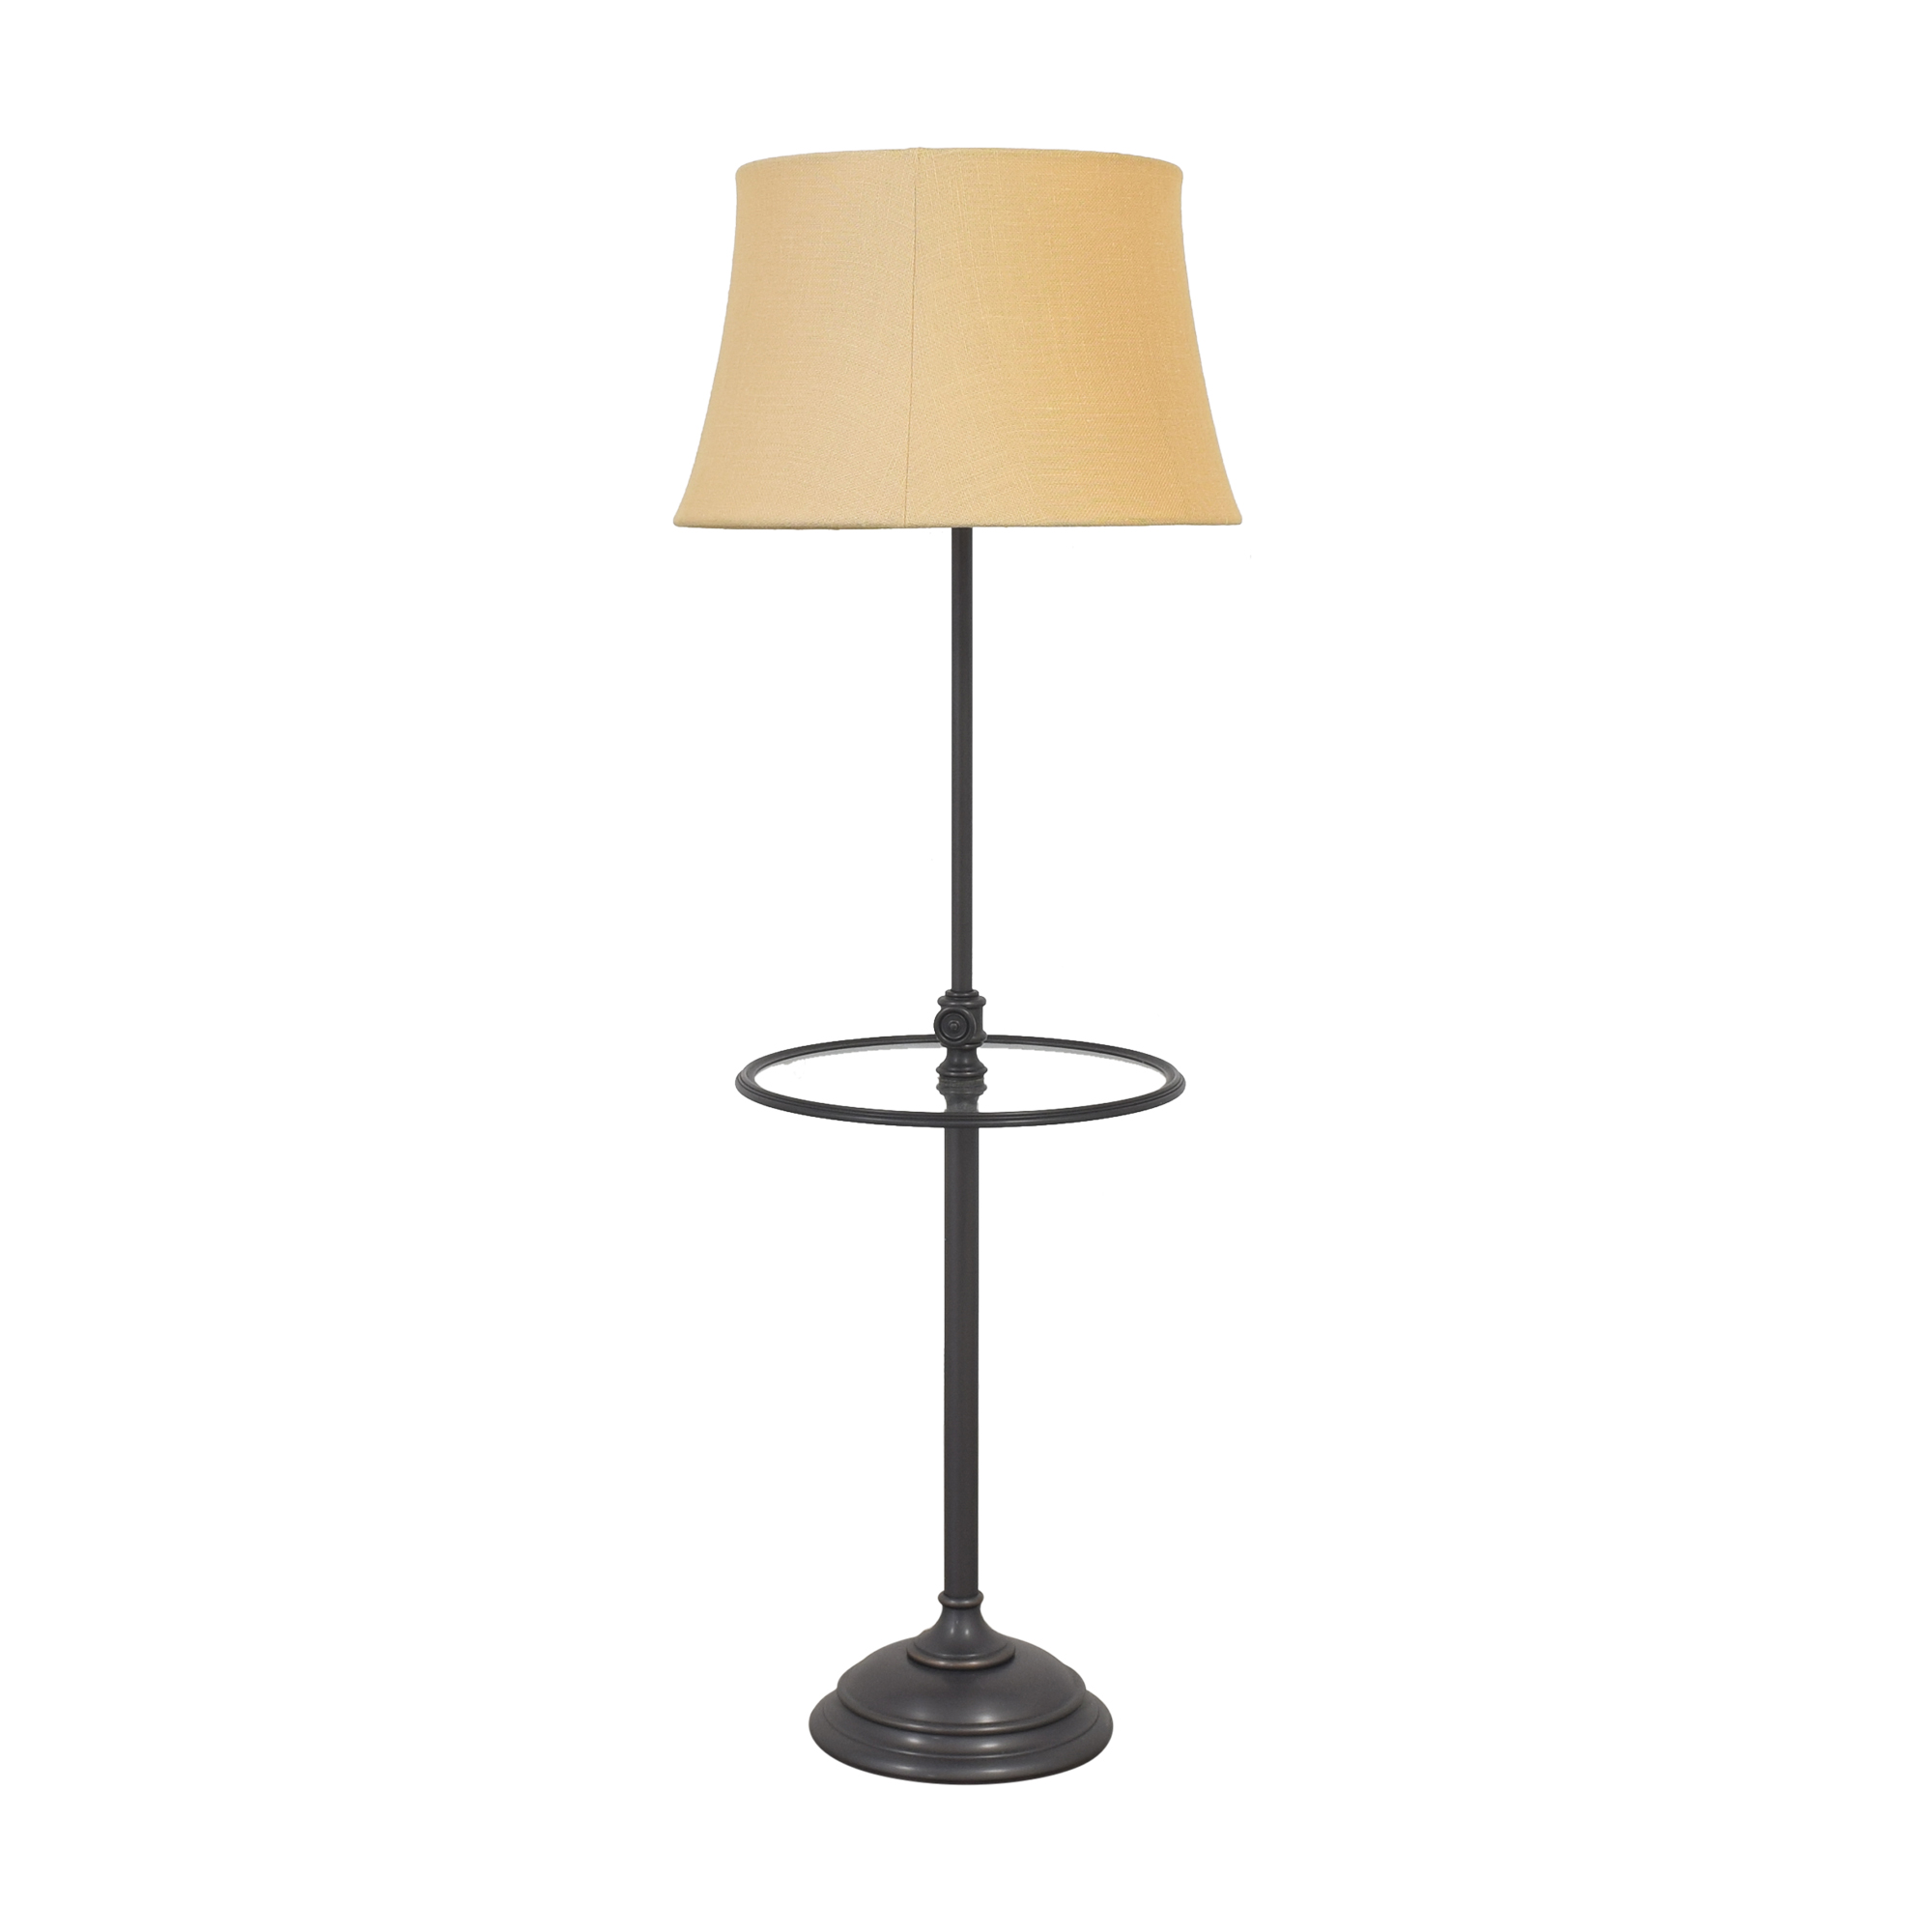 Pottery Barn Pottery Barn Chelsea Floor Lamp with Tray for sale